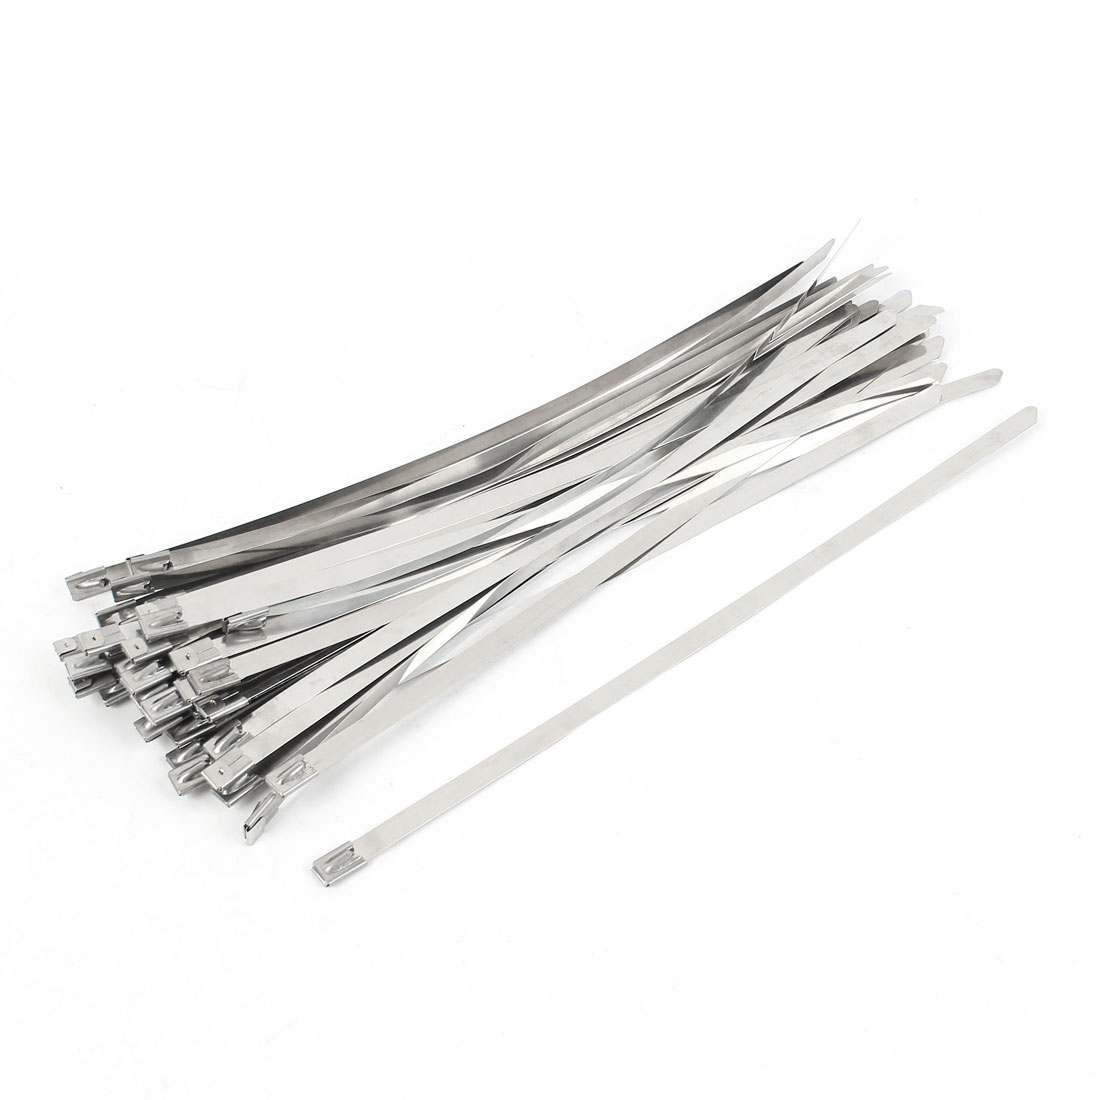 50Pcs Stainless Steel Coated Zip Tie 300x8mm for Pipe Hose Cable